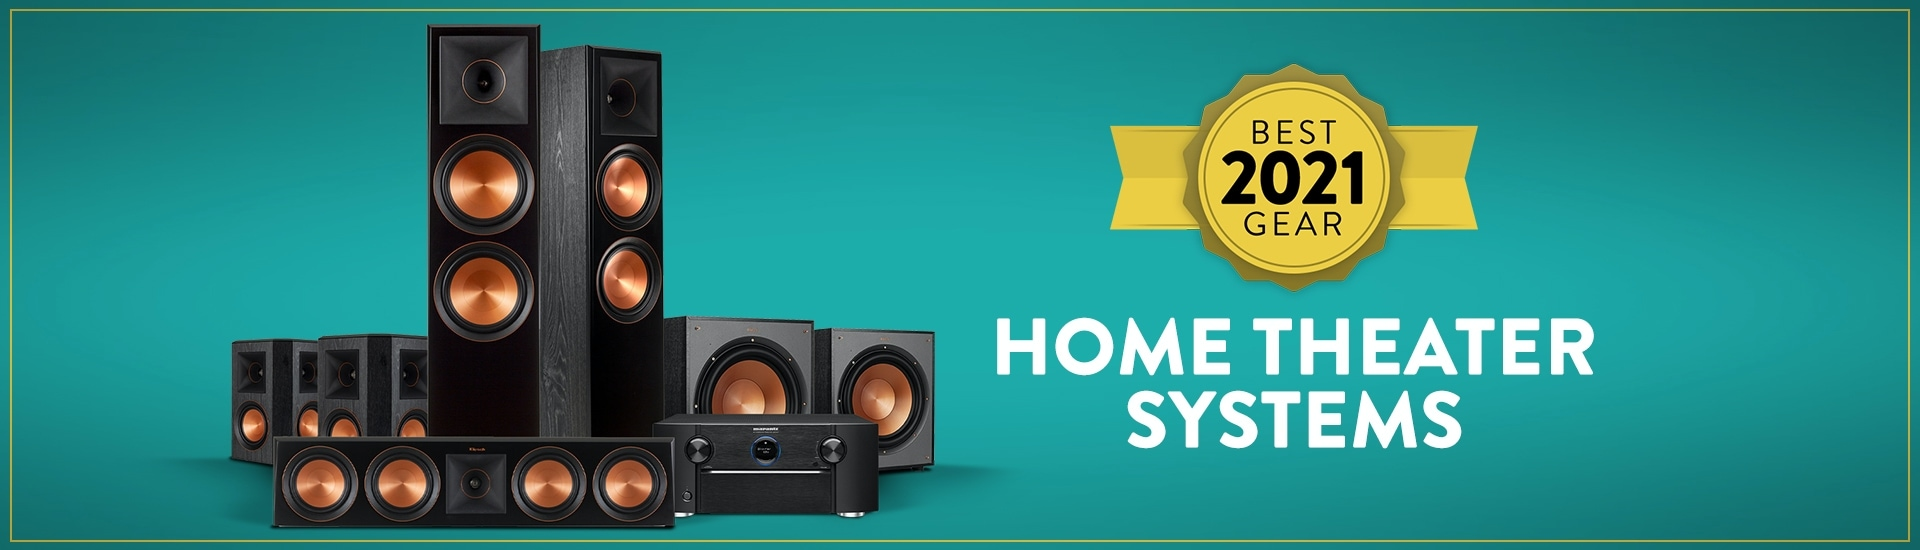 The Best Home Theater Systems of 2021